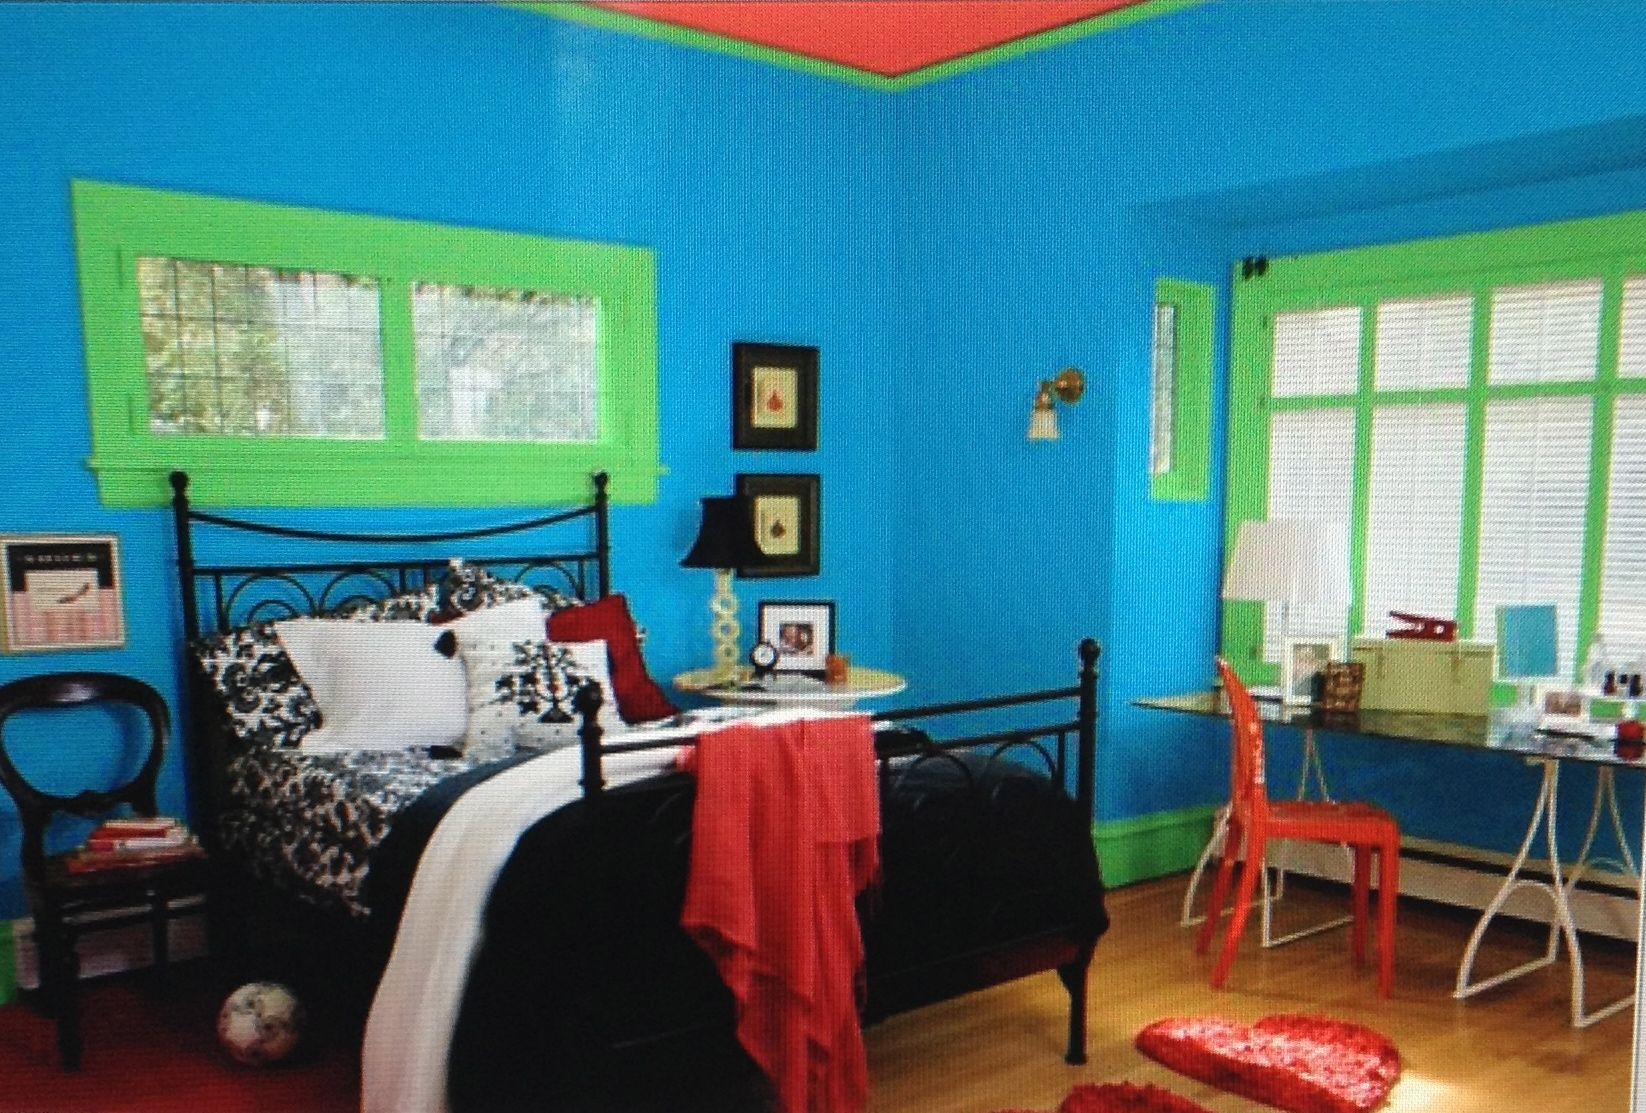 The Color Scheme Of This Double Complementary Bedroom Is Blue Green Orange And Red The Main